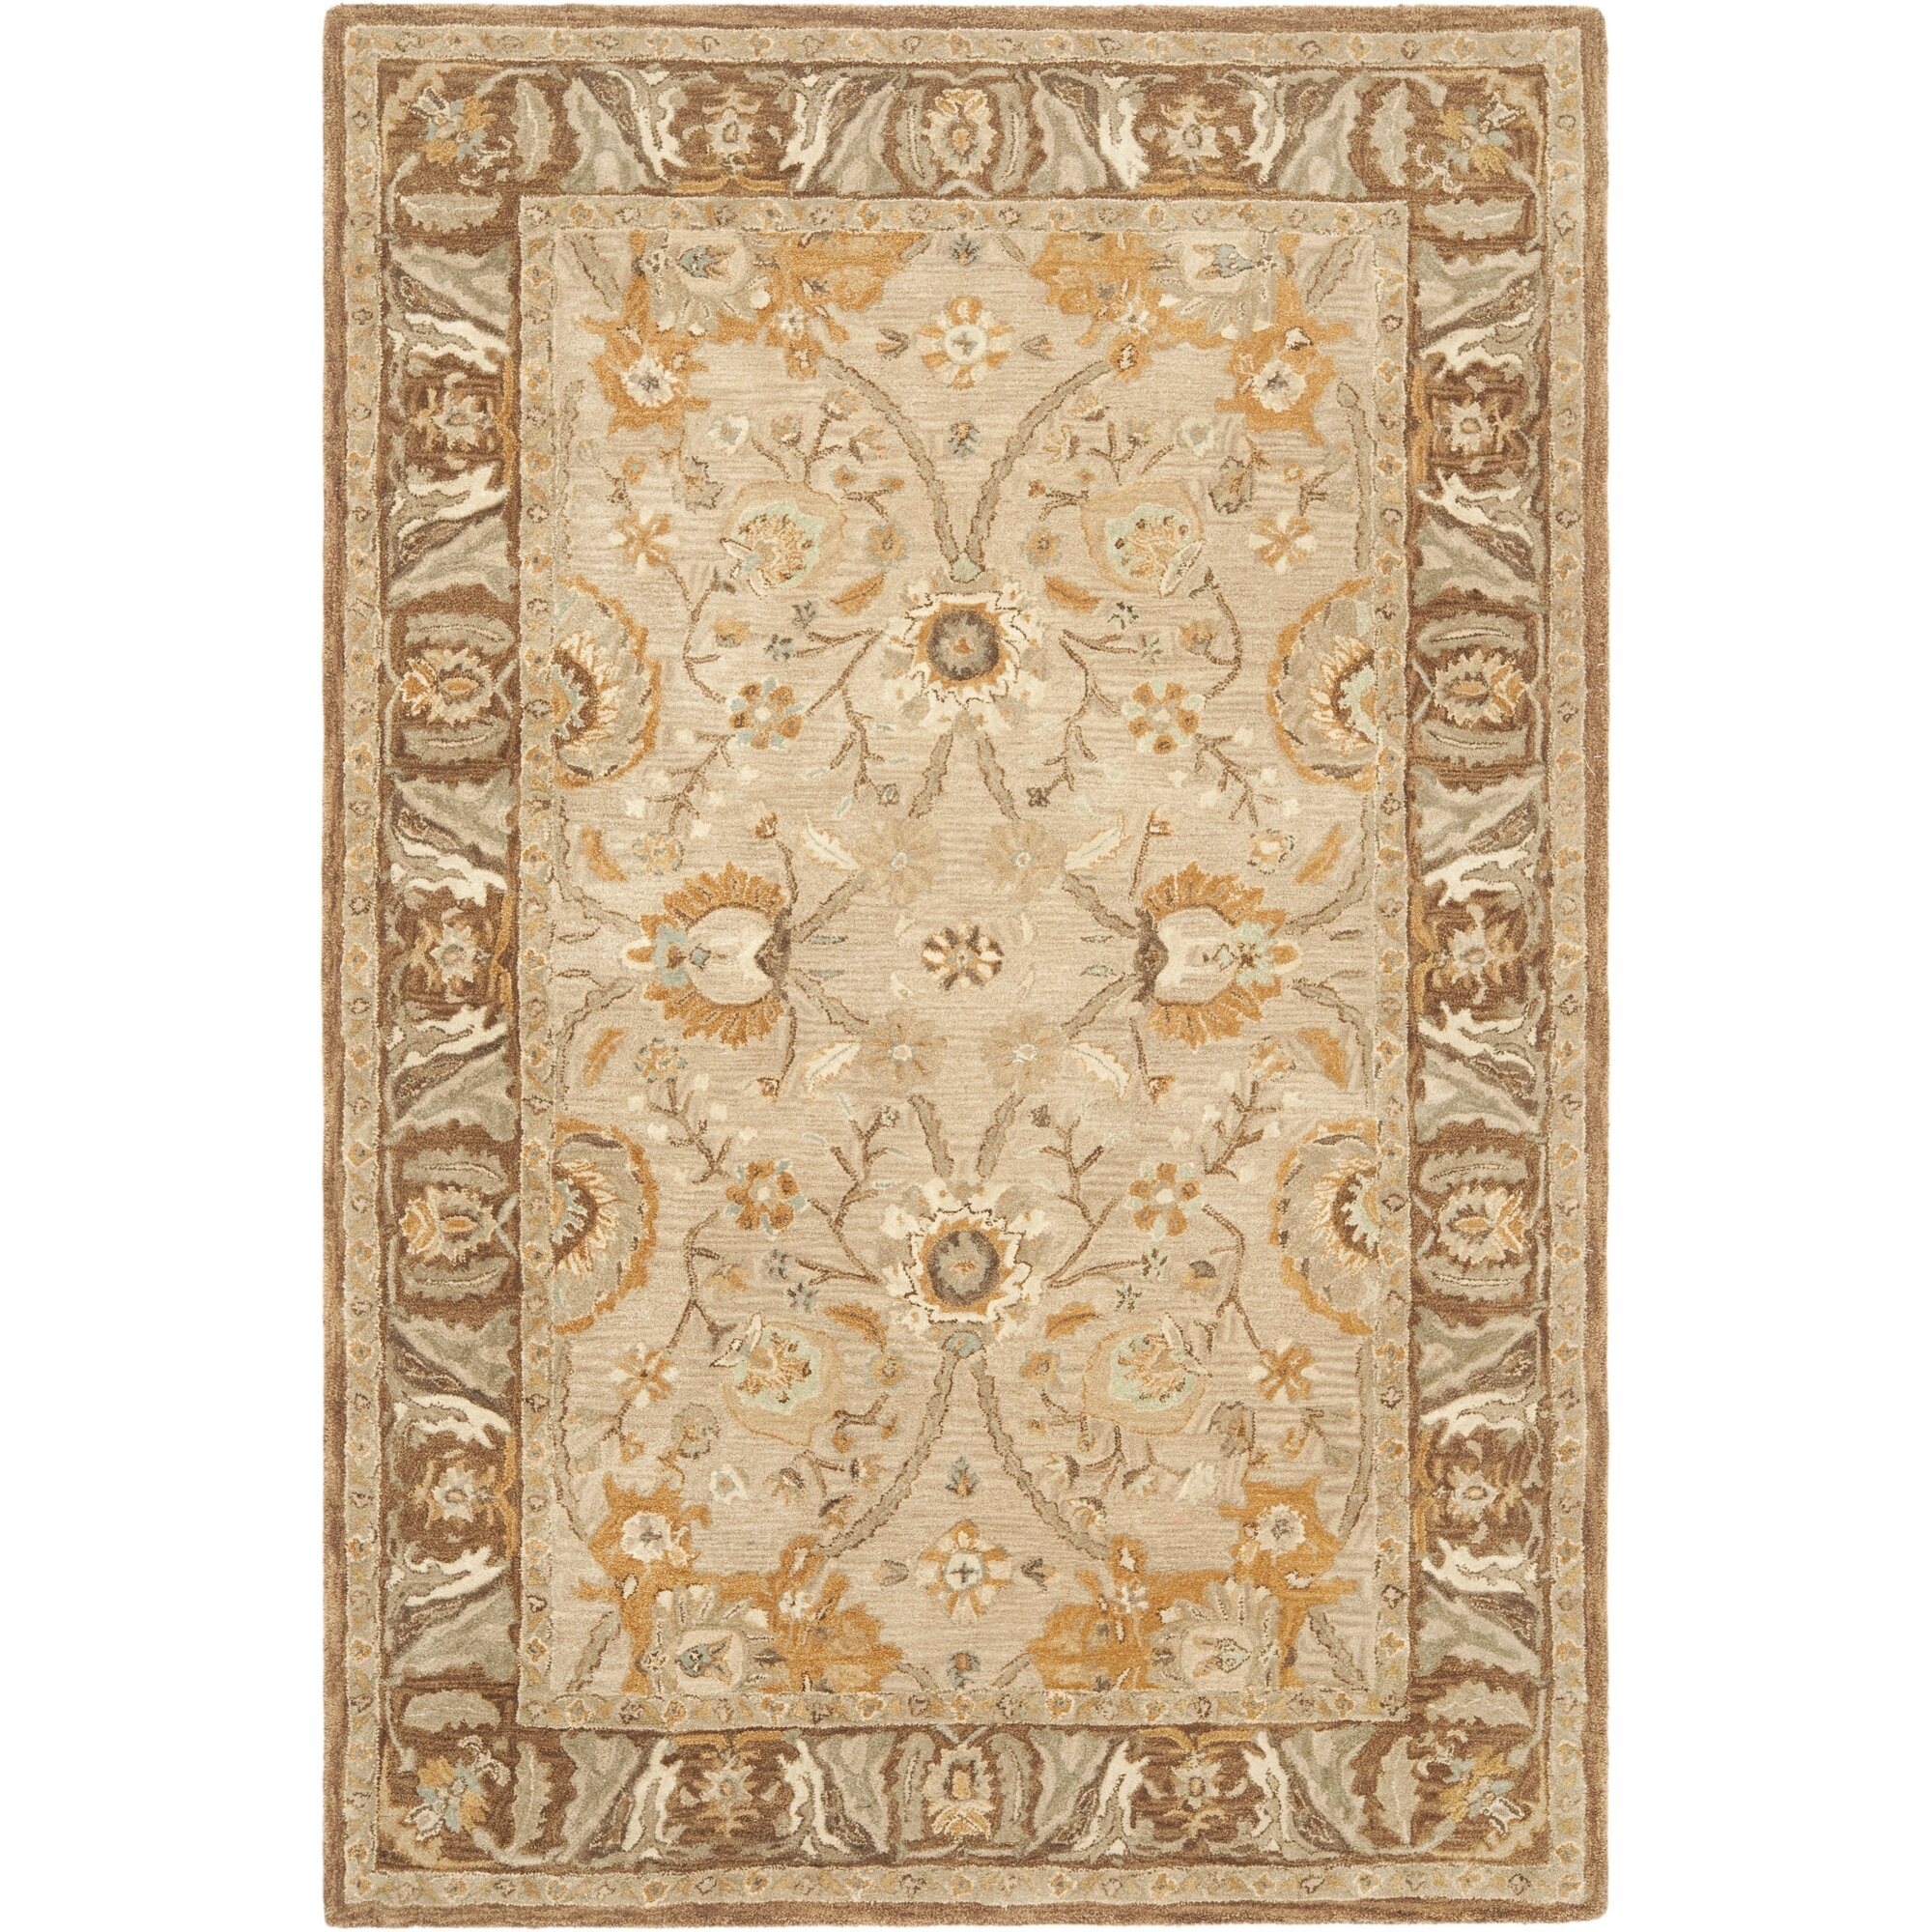 Safavieh anatolia dark grey brown area rug reviews wayfair for Grey and tan rug